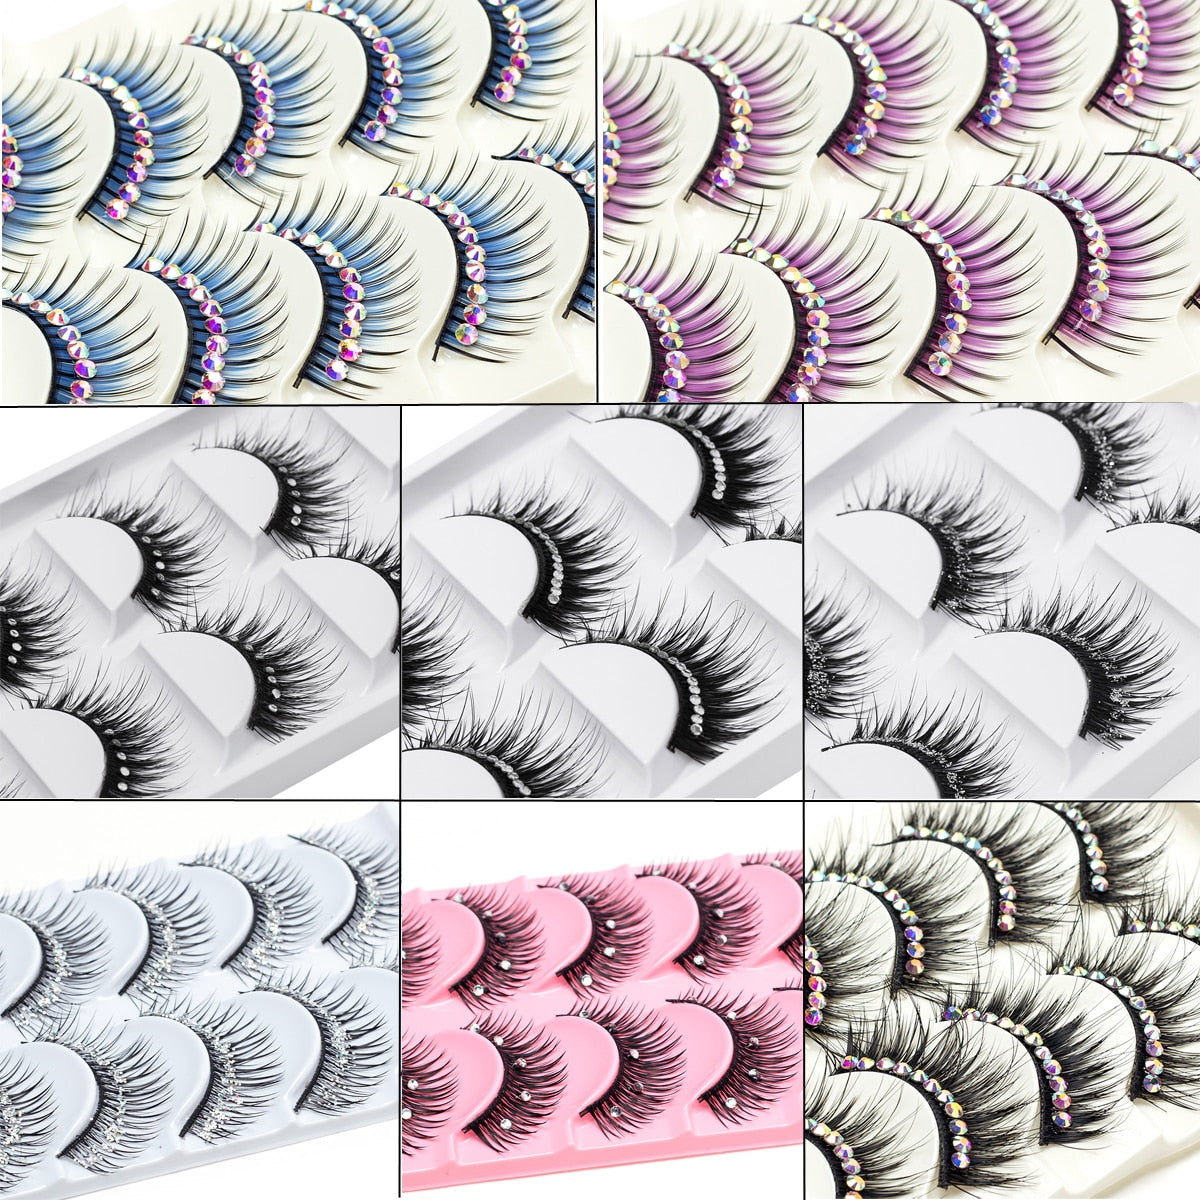 ICYCHEER Makeup 5 Pairs Color Glitter Diamond Eyelashes False Eye Lashes Party Cosplay Halloween Long Thick Natural Dance Lashes